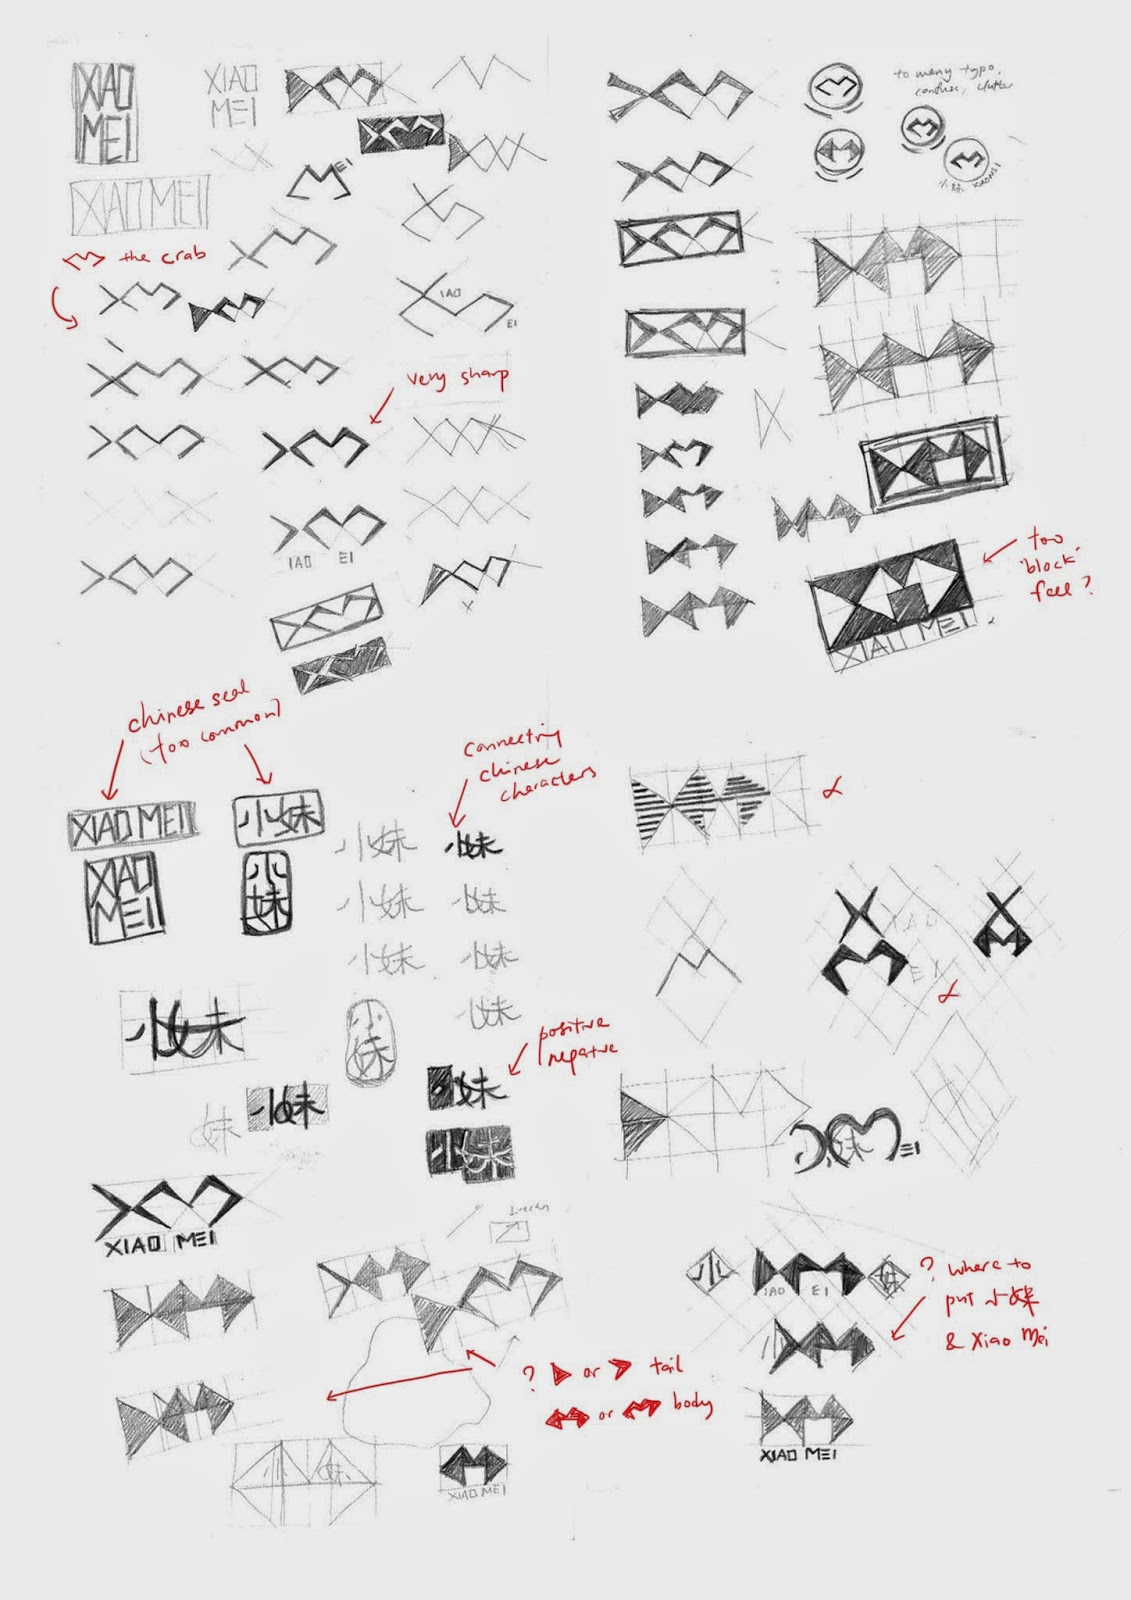 Corporate Identity: Logo Idea Generation and Sketches (1)